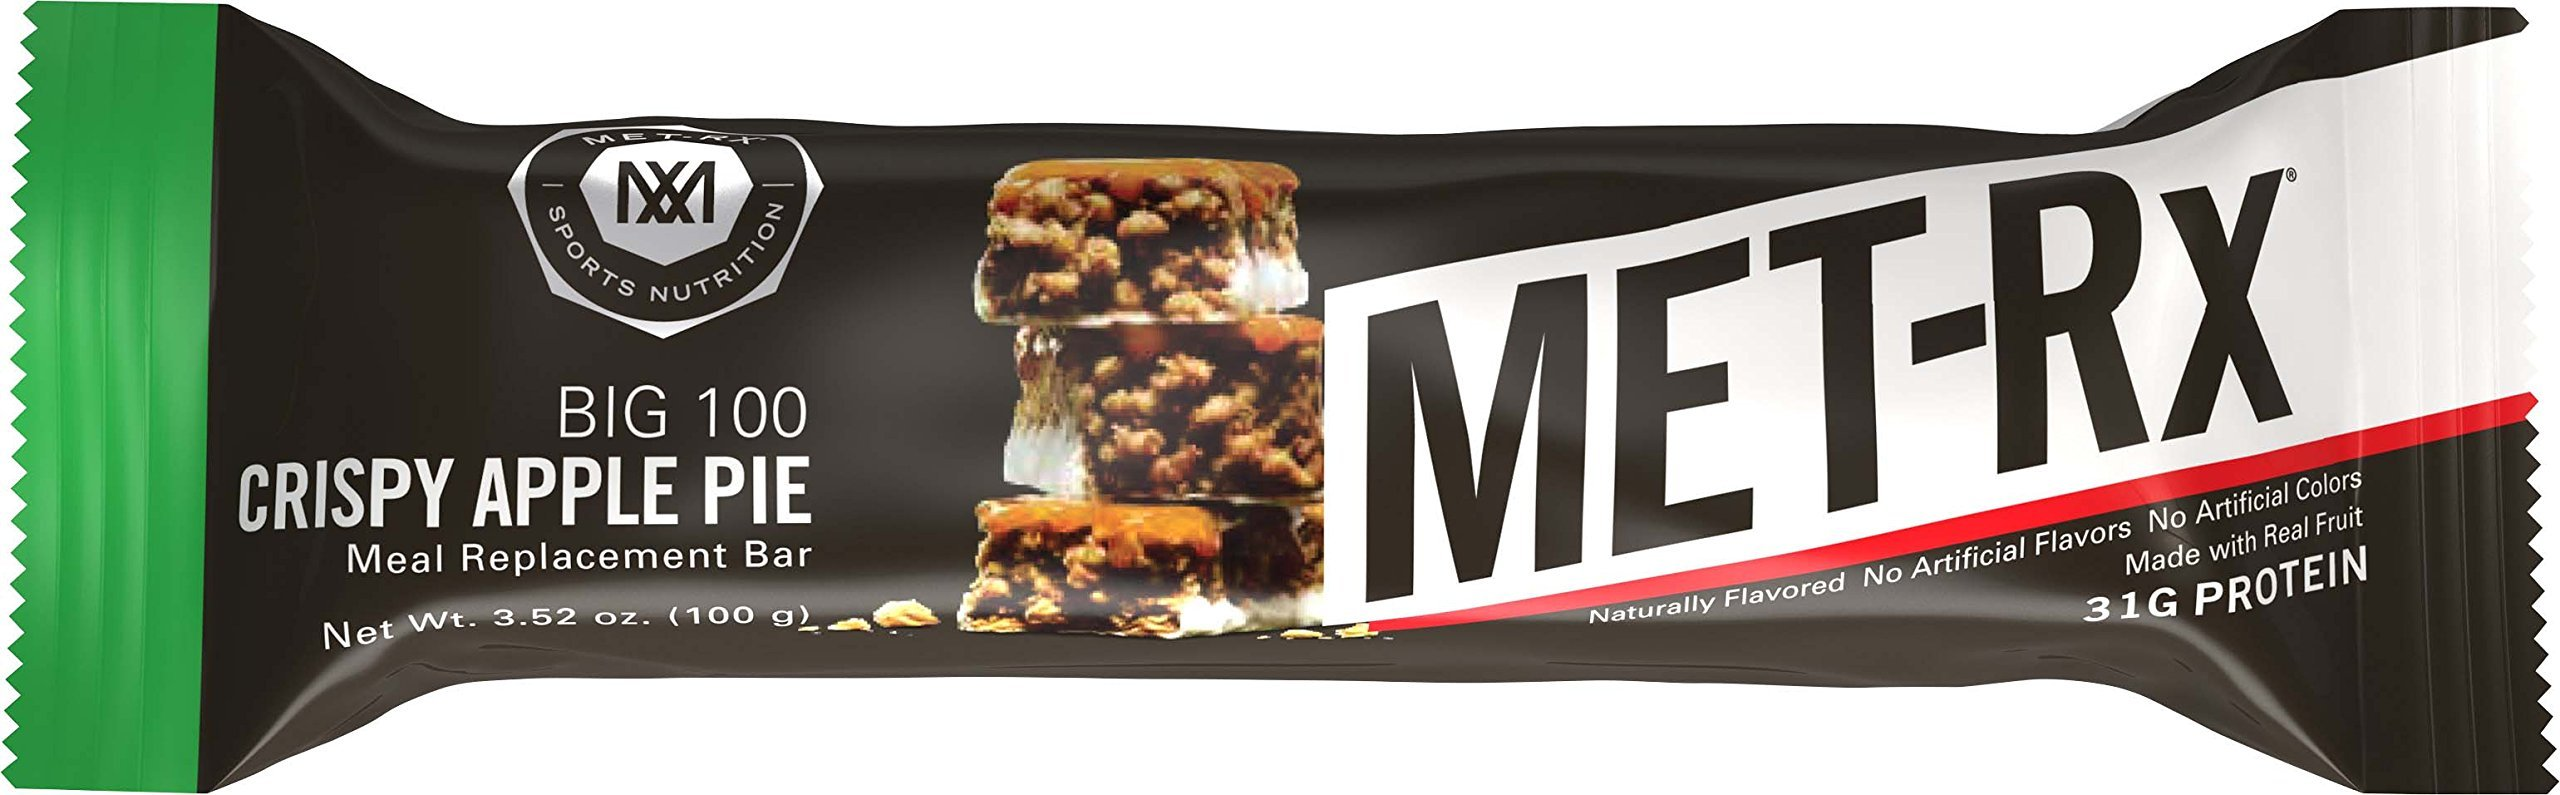 MET-Rx Big 100 Colossal Protein Bar, Crispy Apple Pie, 4 Count Value